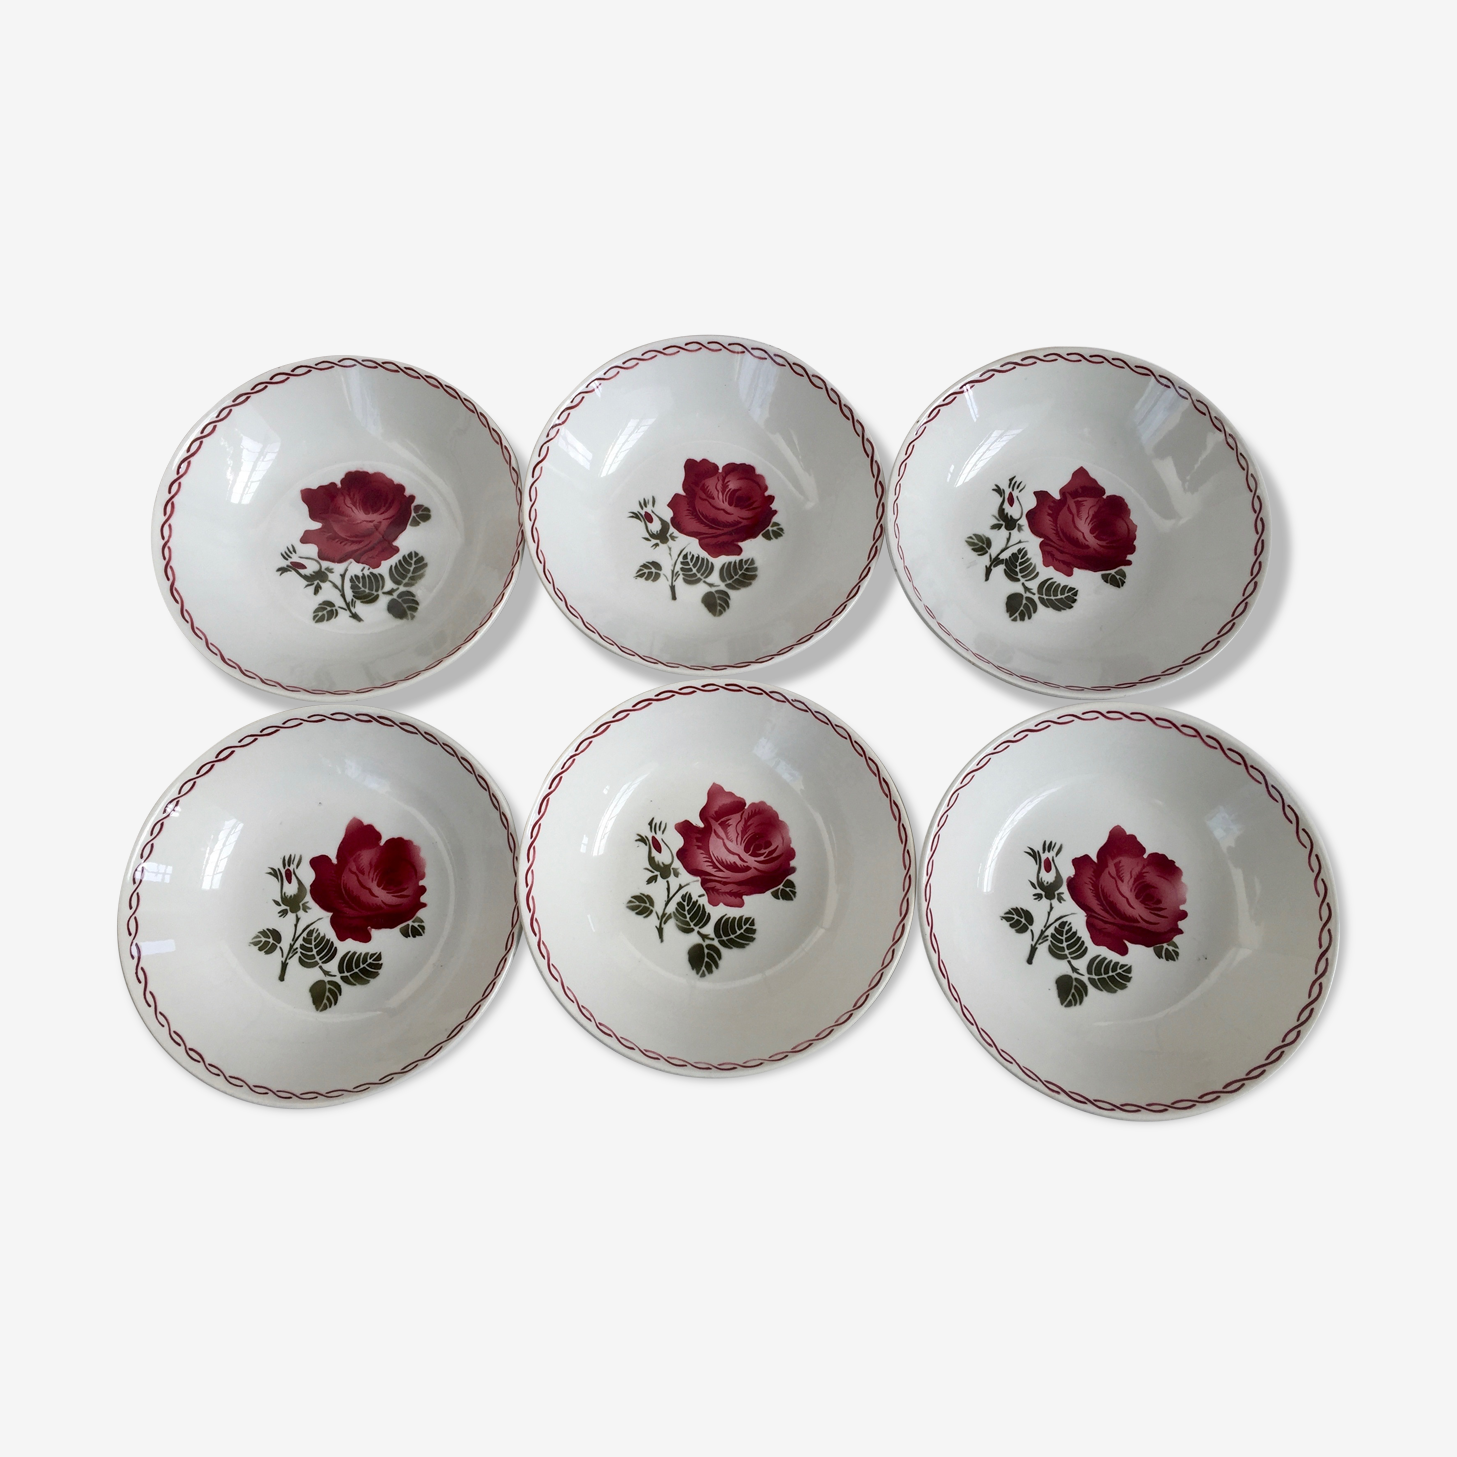 Series of 6 soup plates Badonviller